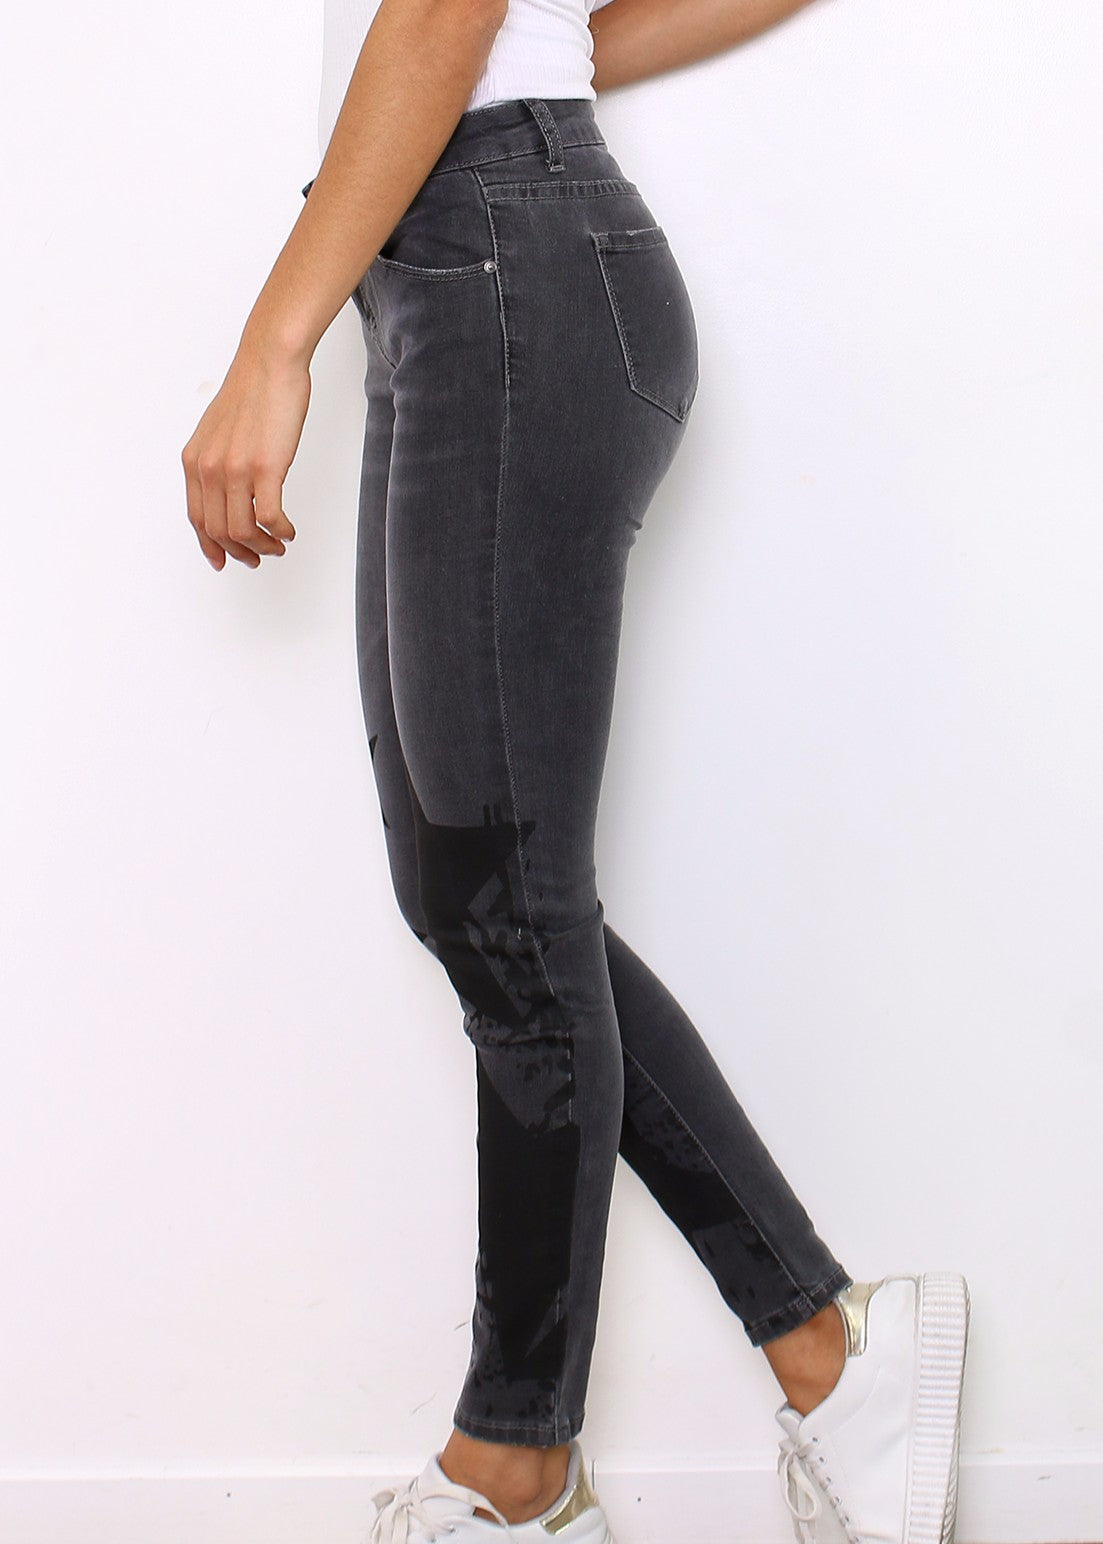 KATTY Skinny Jeans - SOLD OUT